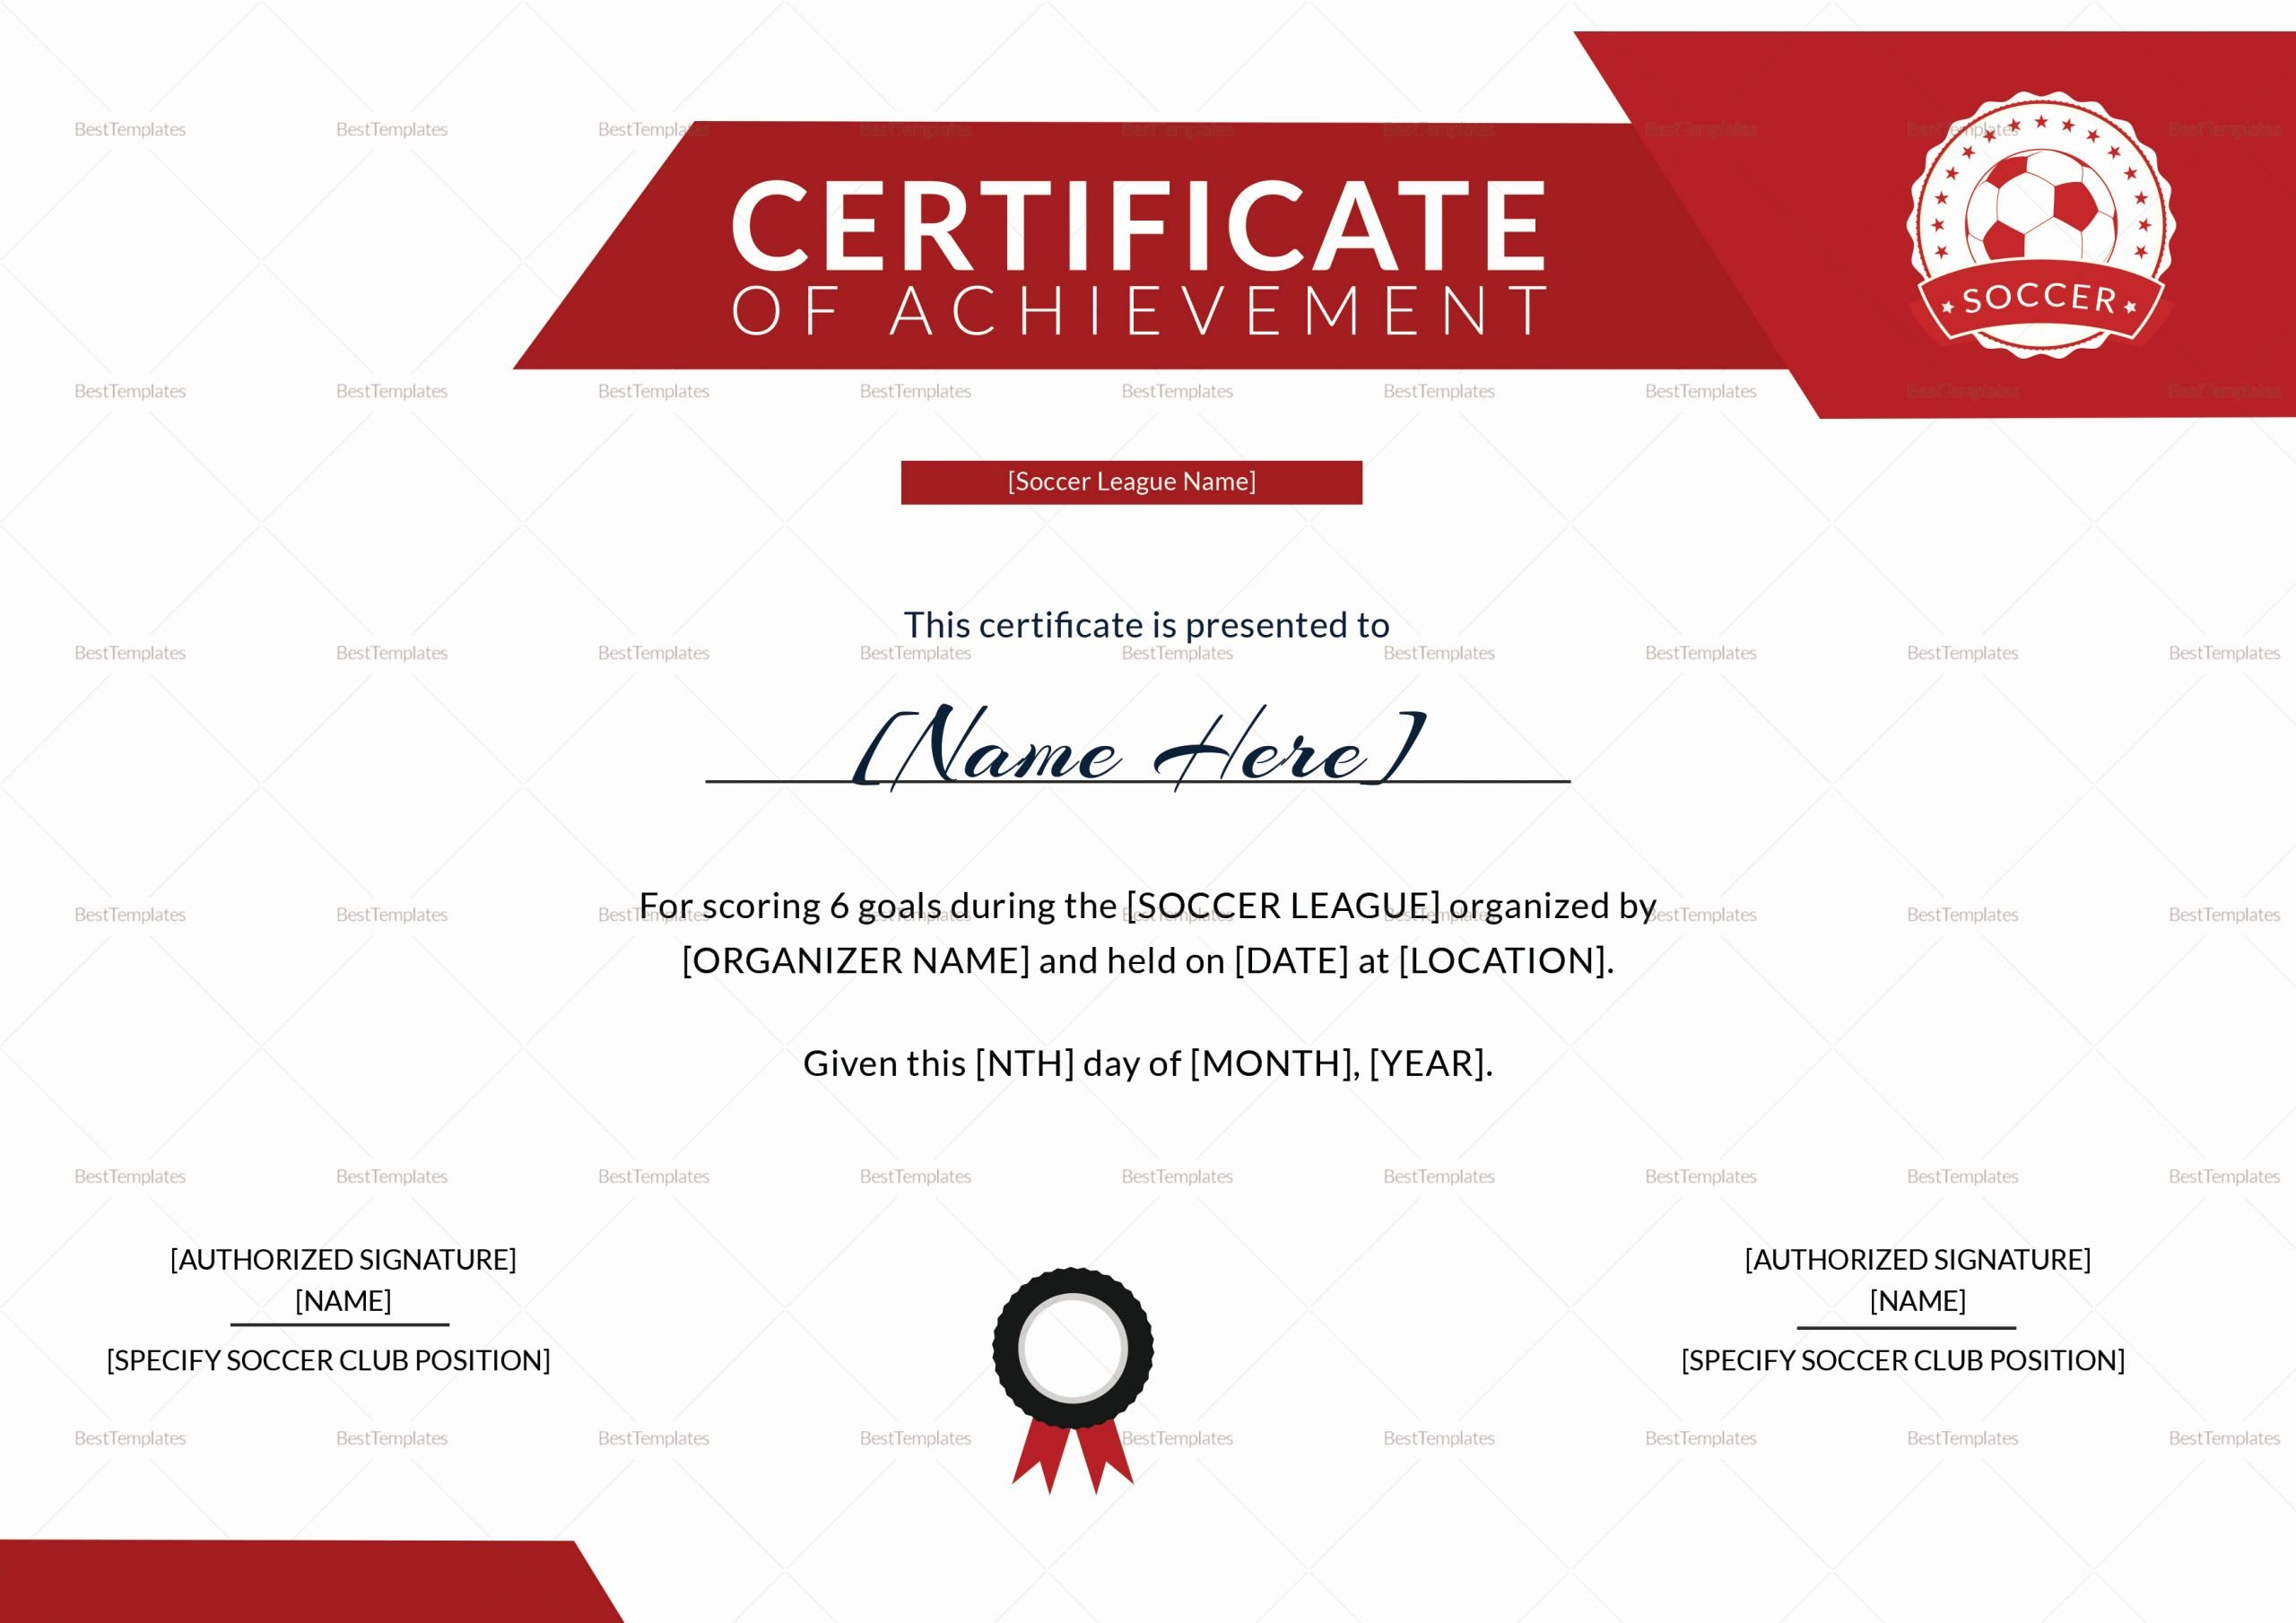 Soccer Certificate Word Template New soccer Achievement Certificate Design Template In Psd Word